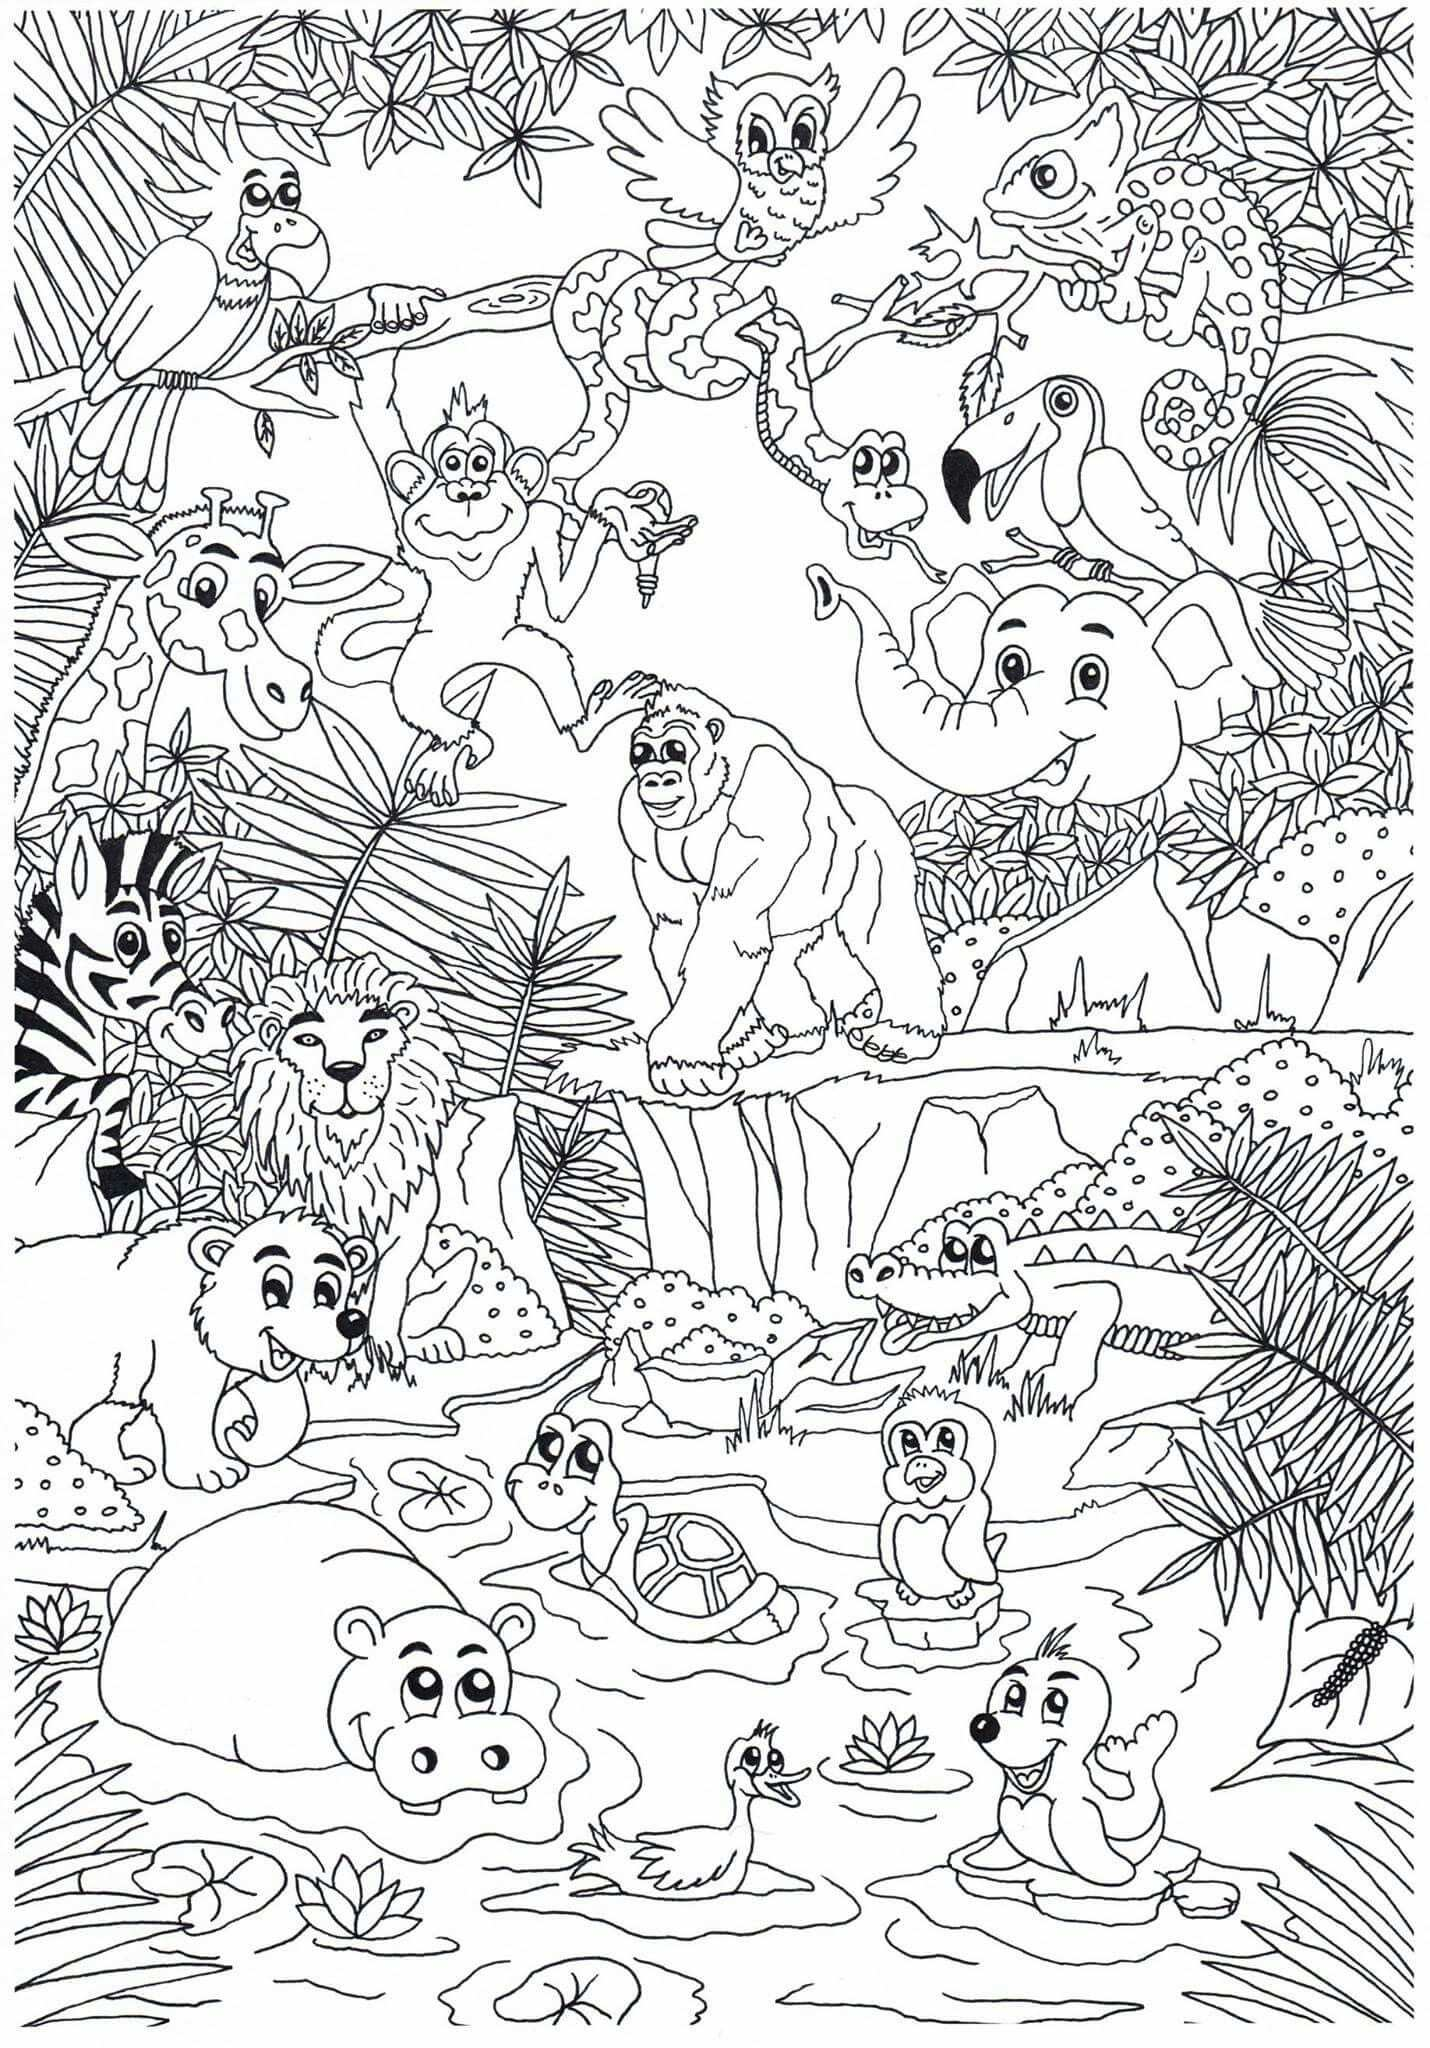 Dierentuin Zoo Animals Click The Pict Or Link To See And Download Another Coloring Page Zoo Coloring Pages Jungle Coloring Pages Zoo Animal Coloring Pages